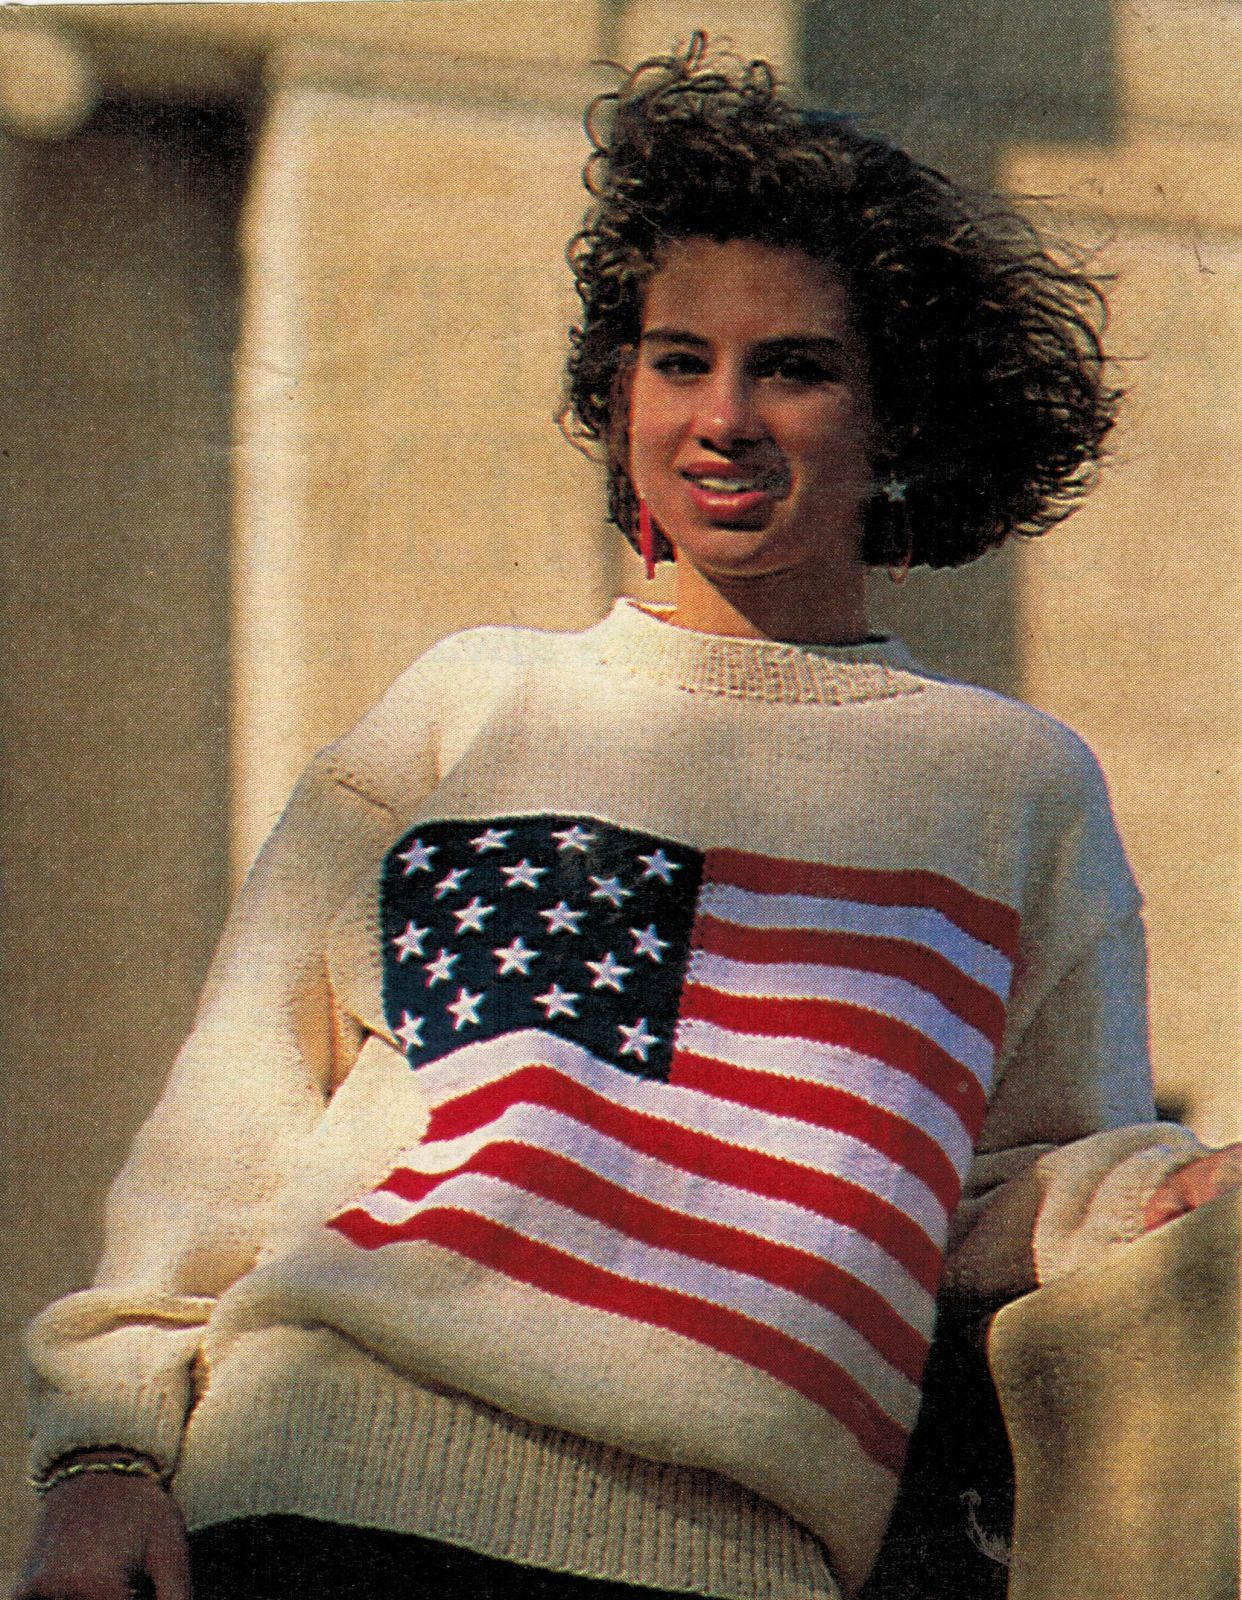 Primary image for Child Misses Patriotic Vote Republican Democrat USA Flag Knit Sweater Pattern